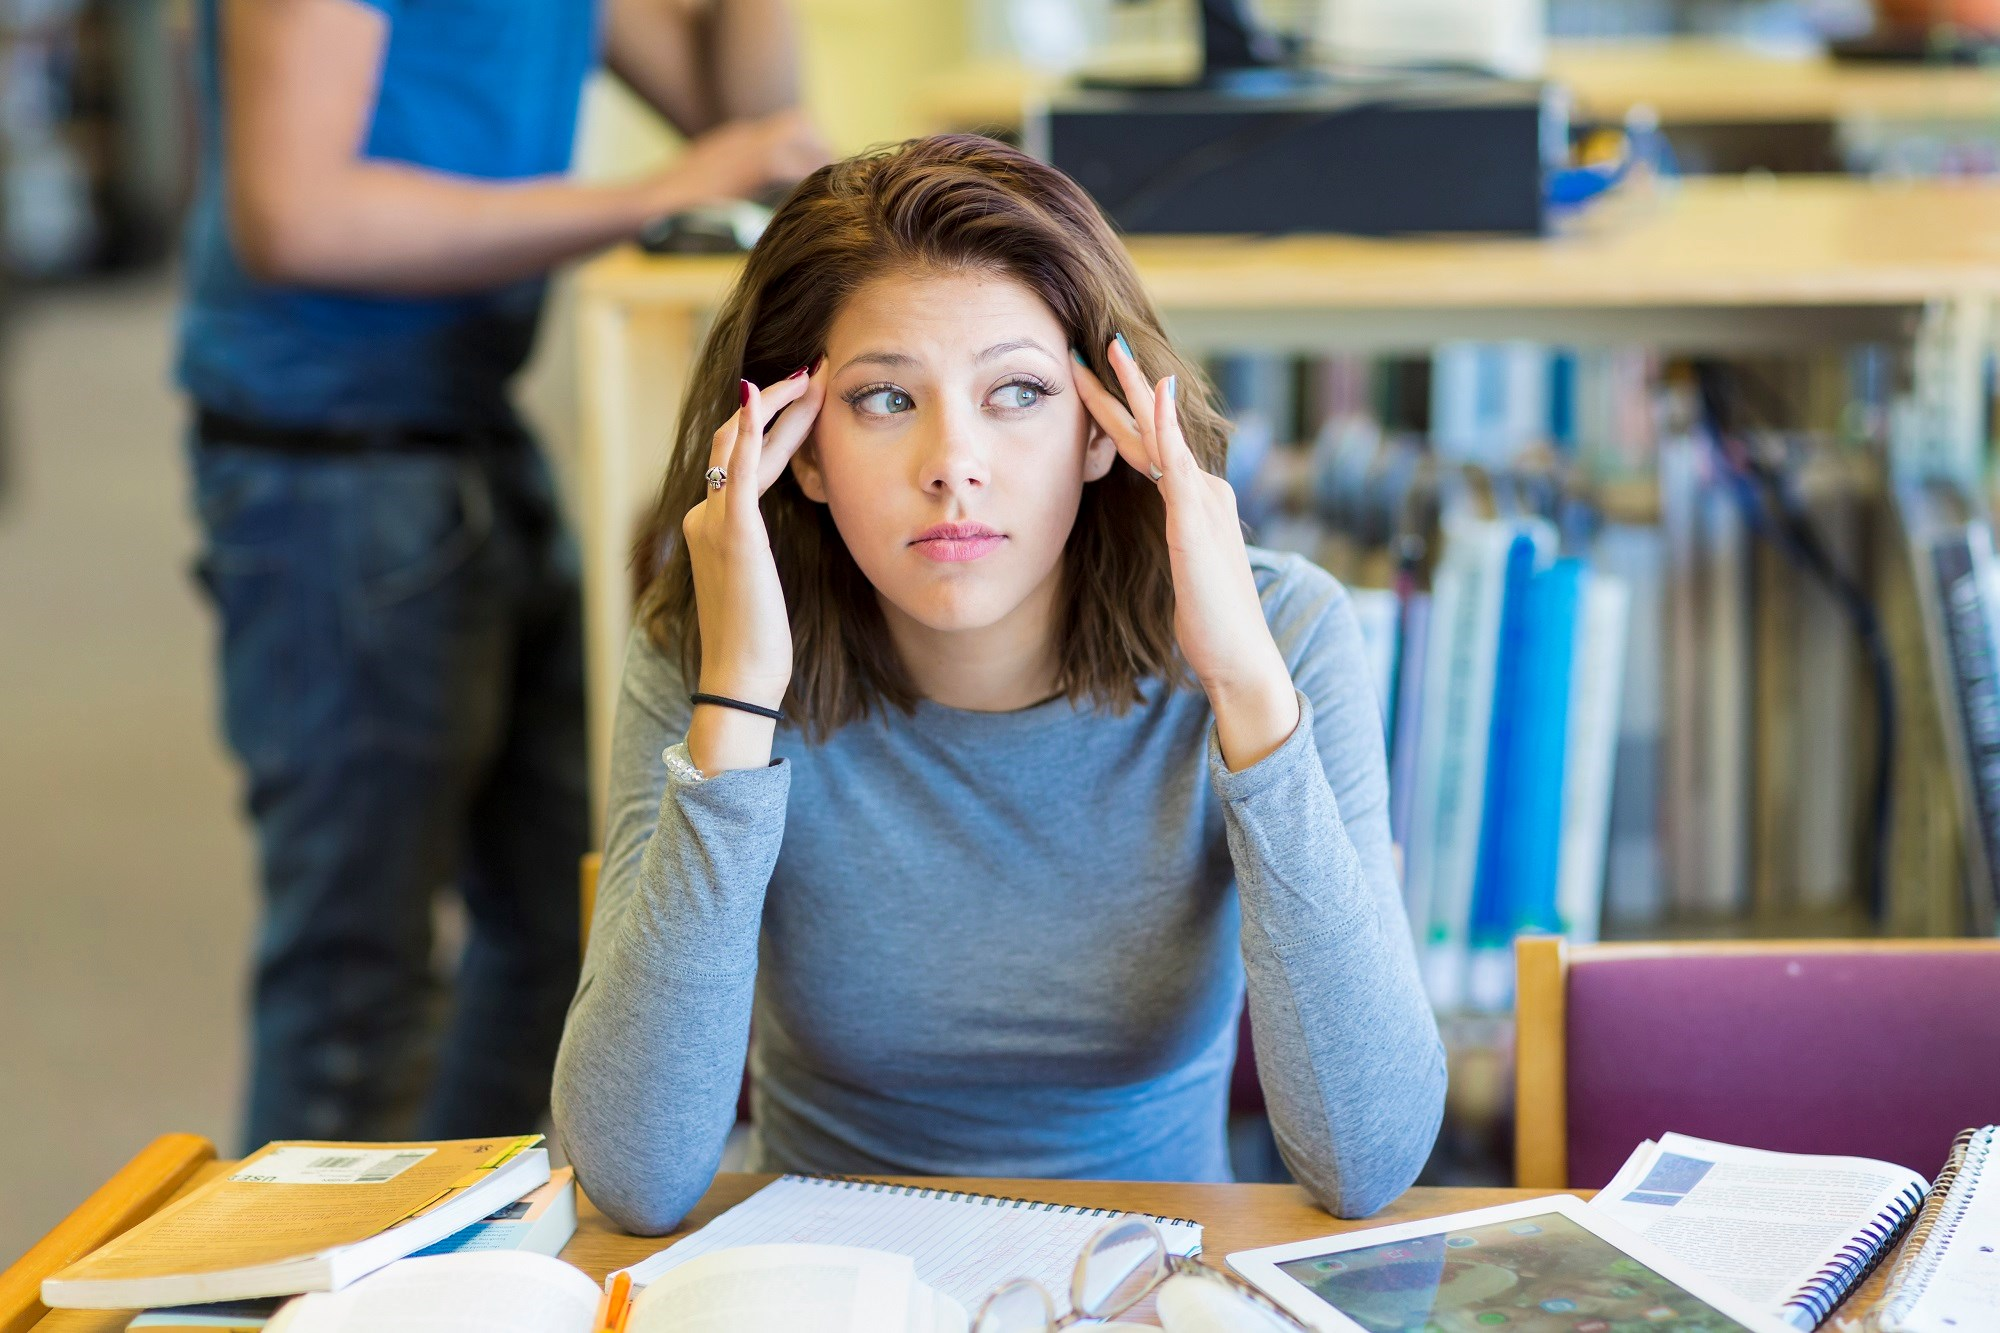 Migraine Associated With Self-Reported ADHD Symptoms in University Students